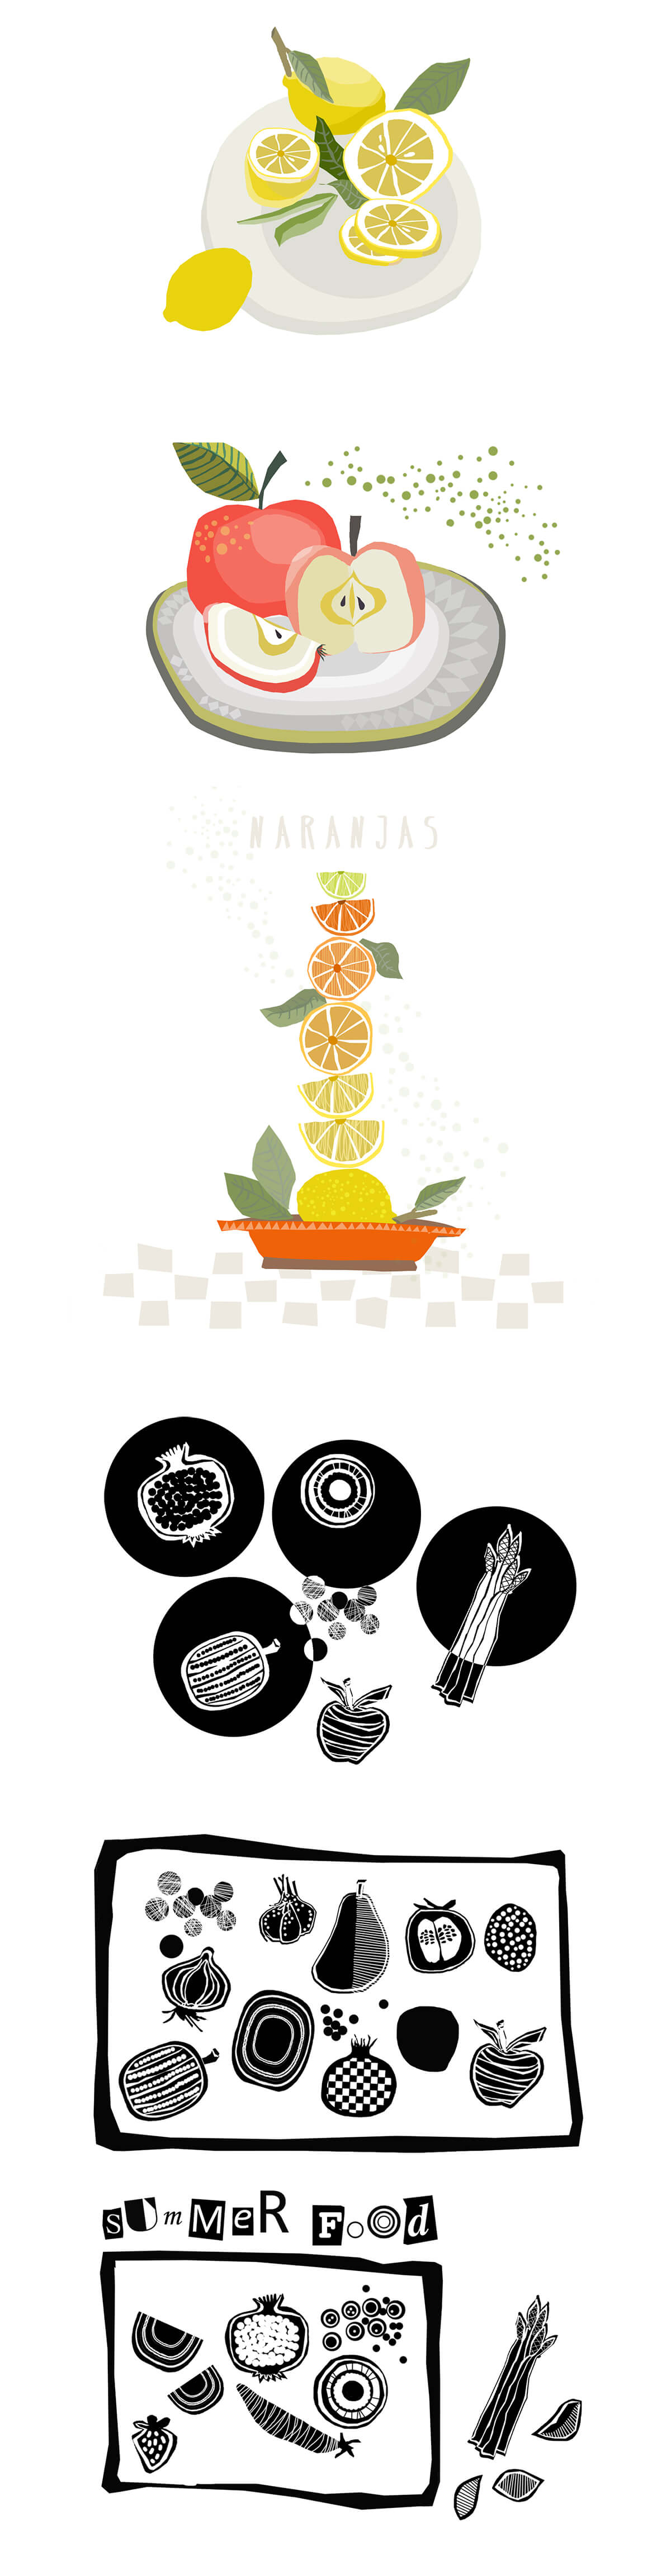 Food illustration by Angeles Nieto